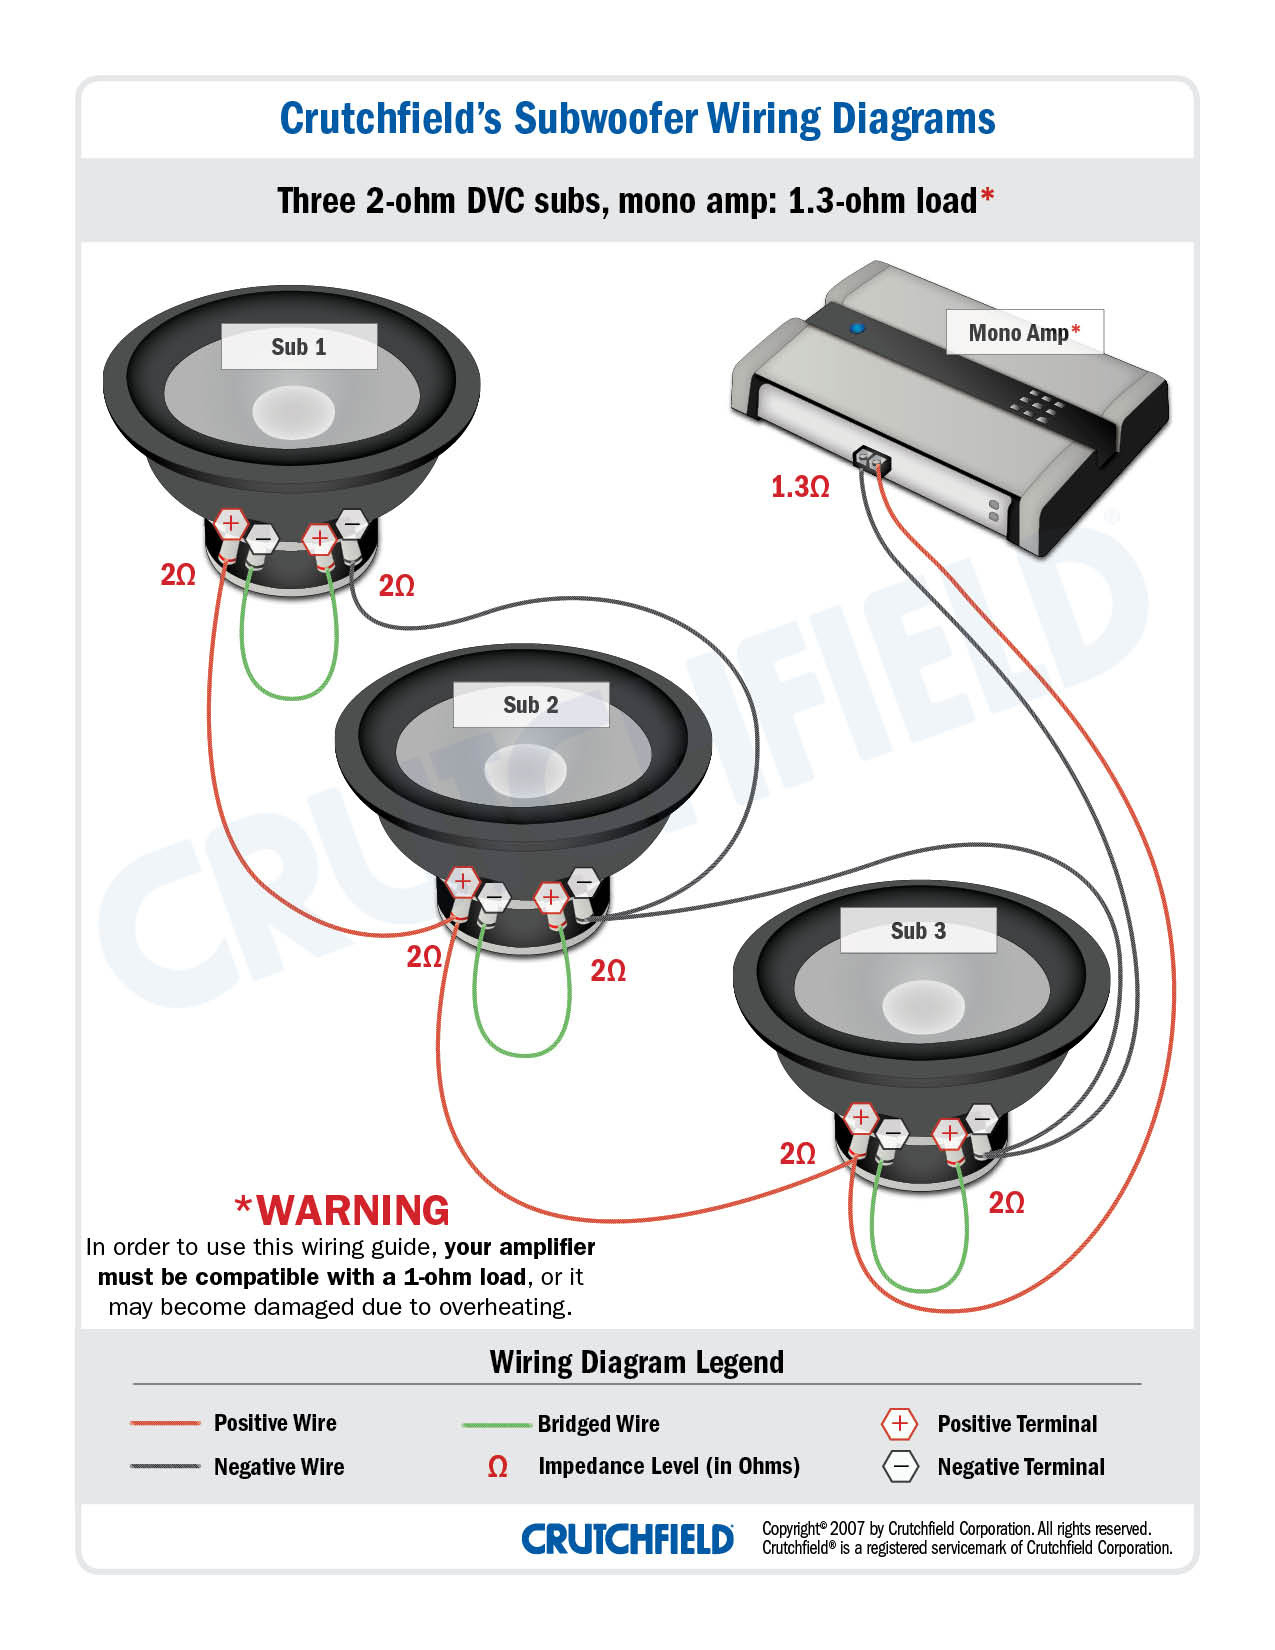 Subwoofer Wiring Diagram Dual 4 Ohm Fresh Subwoofer Wiring Diagrams - Subwoofer Wiring Diagram Dual 4 Ohm